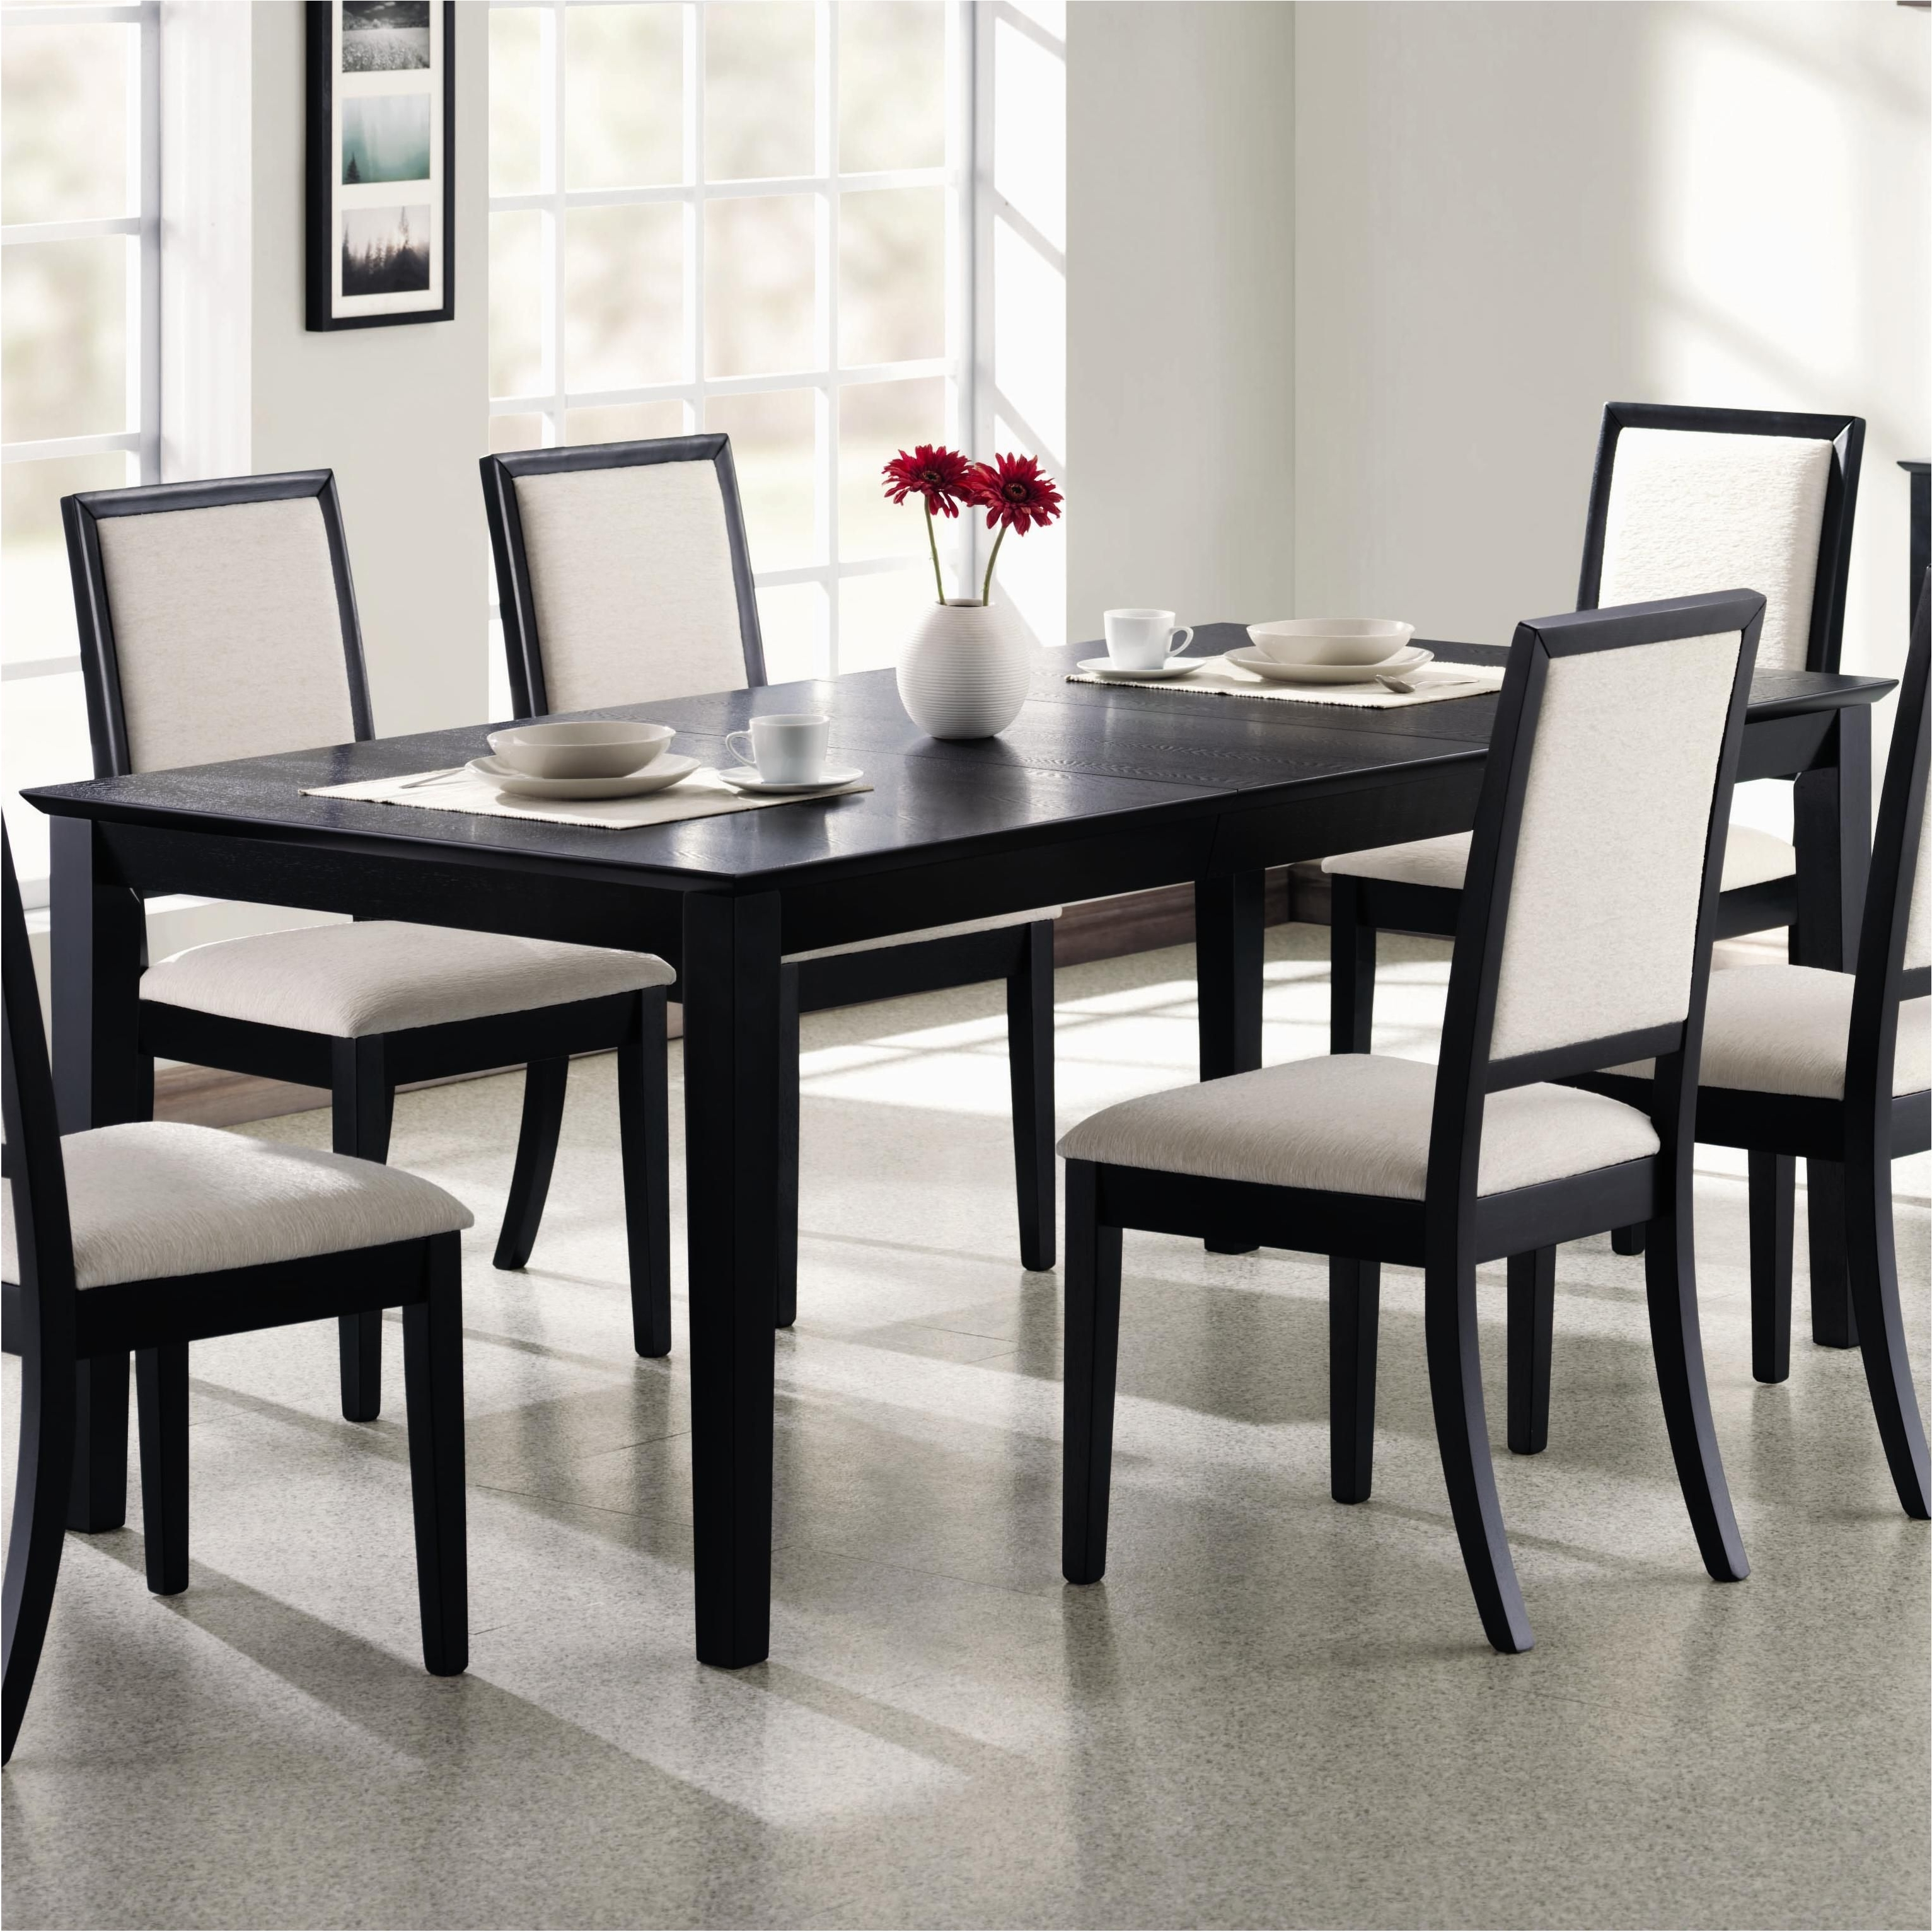 Red Gloss Dining Tables Regarding Current Spectacular Dining Sets Lumen Home Home Designs – Black Gloss Dining (View 19 of 25)